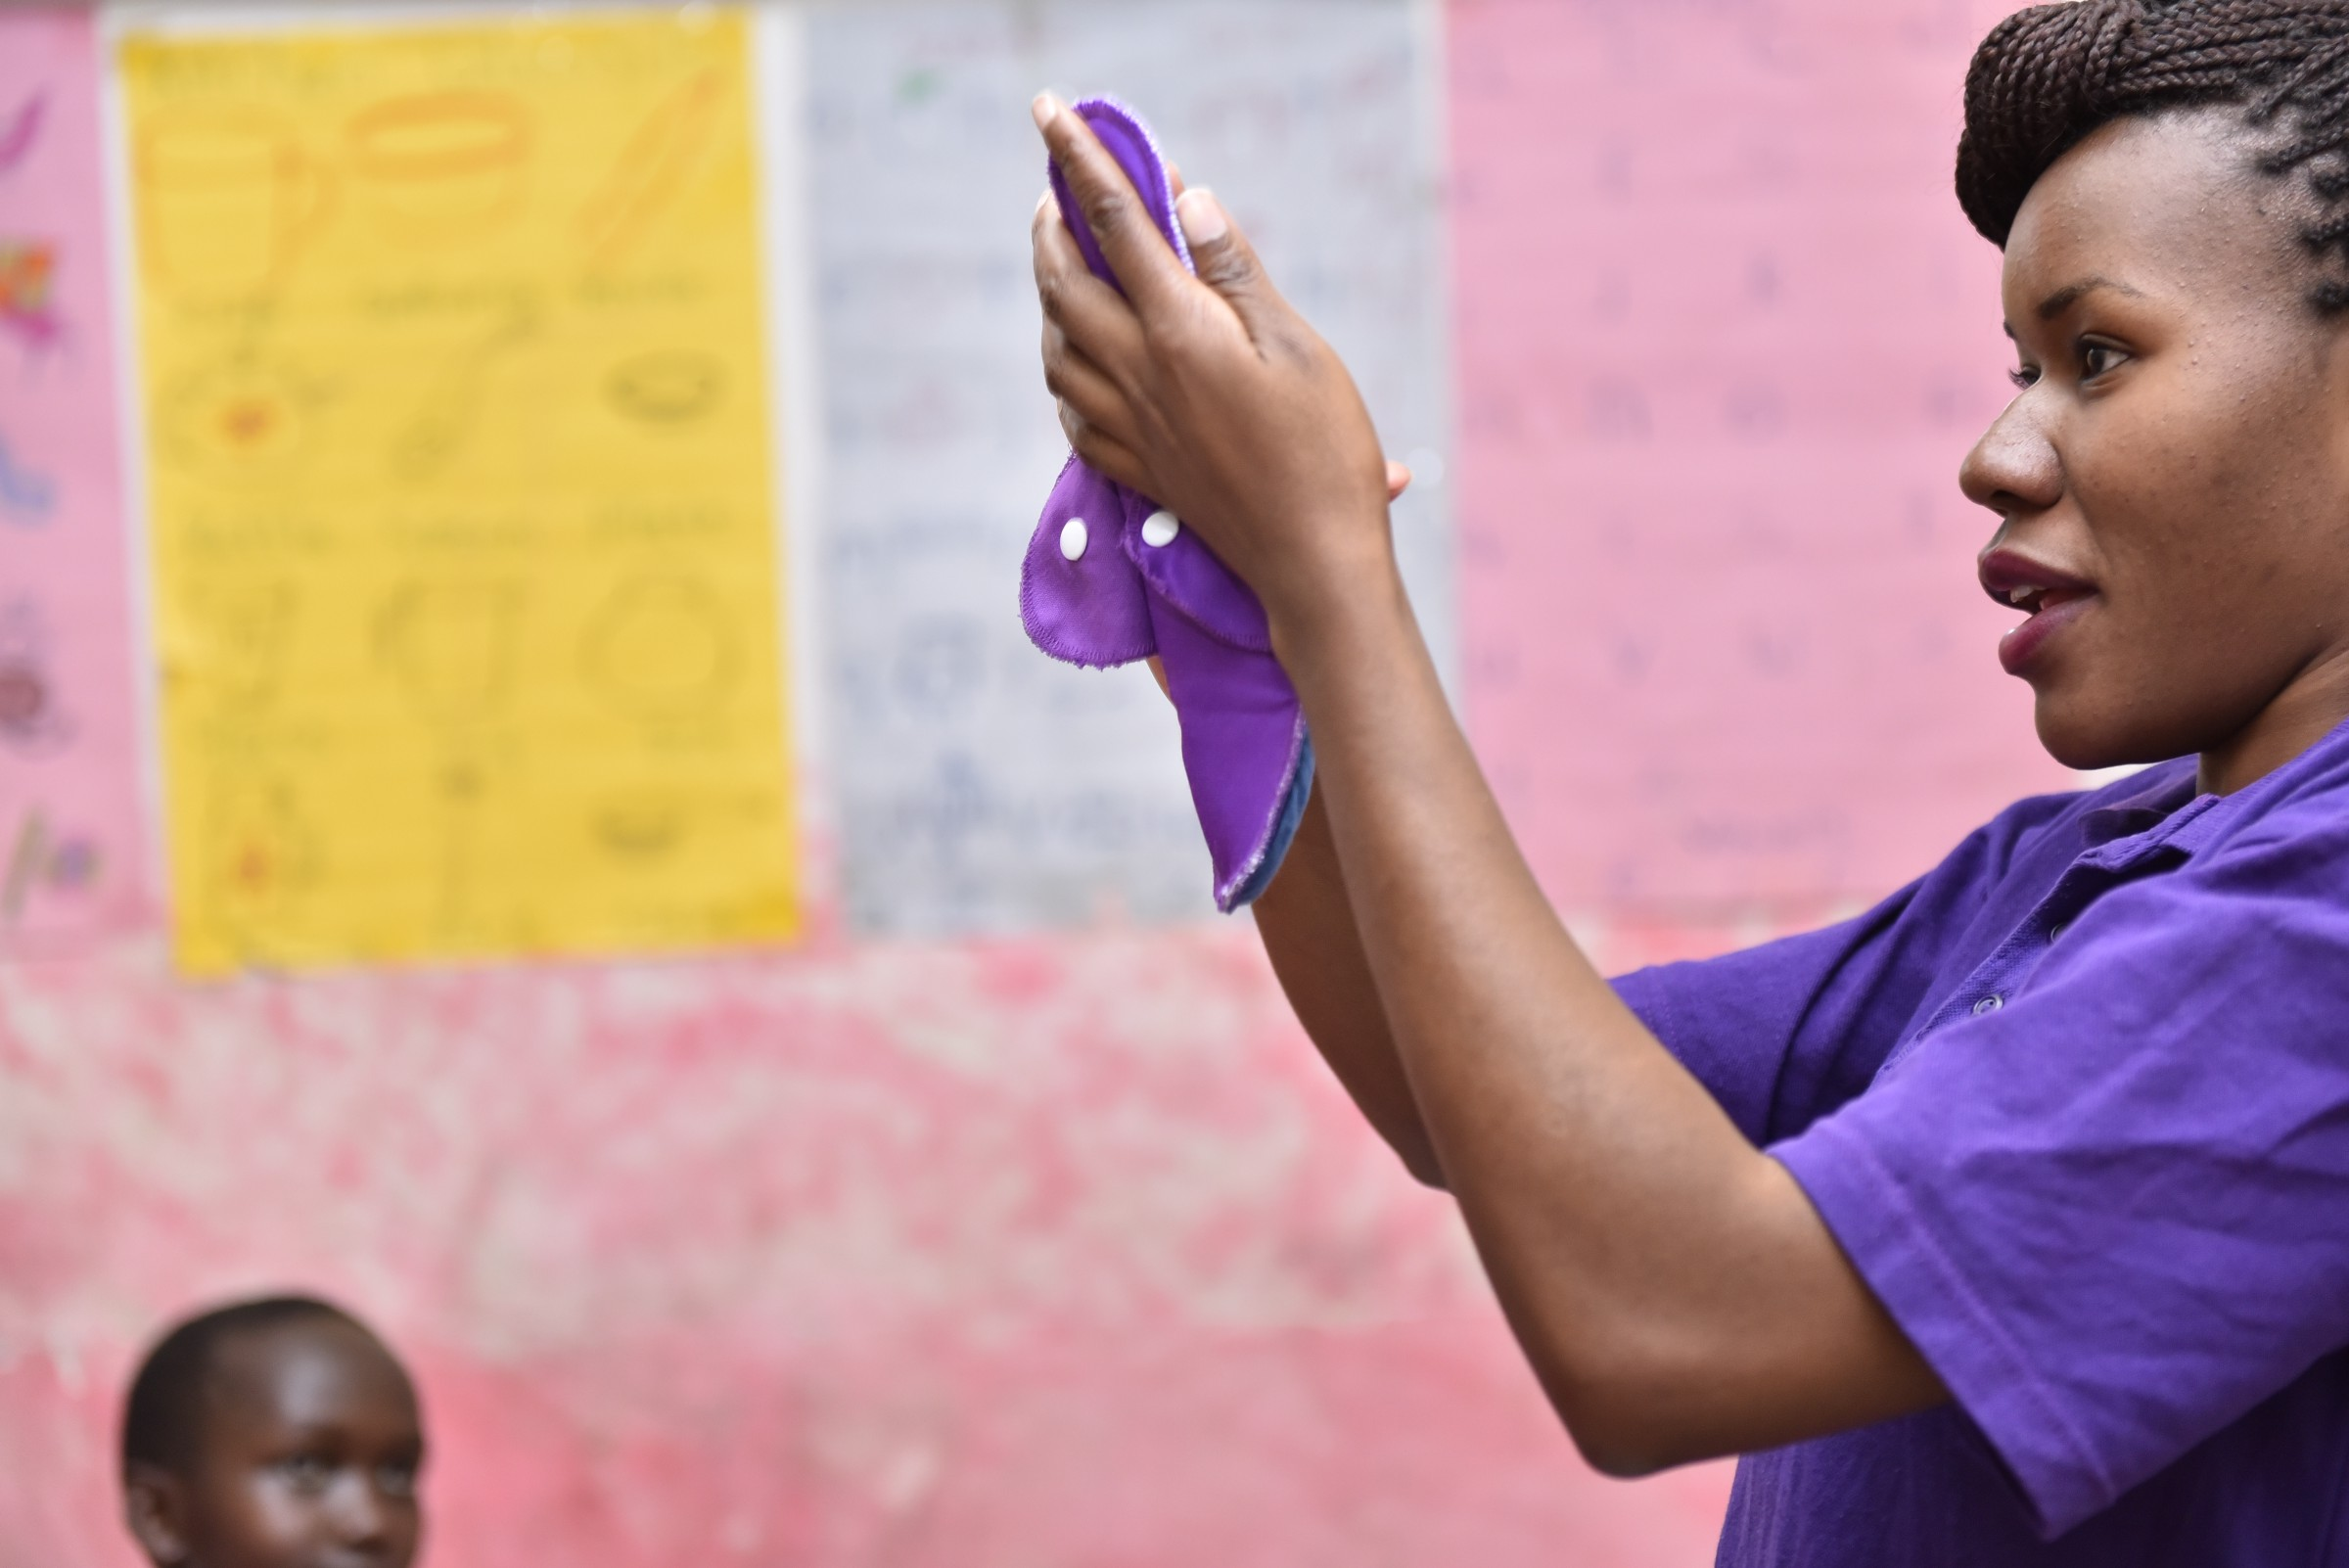 Huru International has produced over 1,000,000 pads to date by local women and men in under-served communities